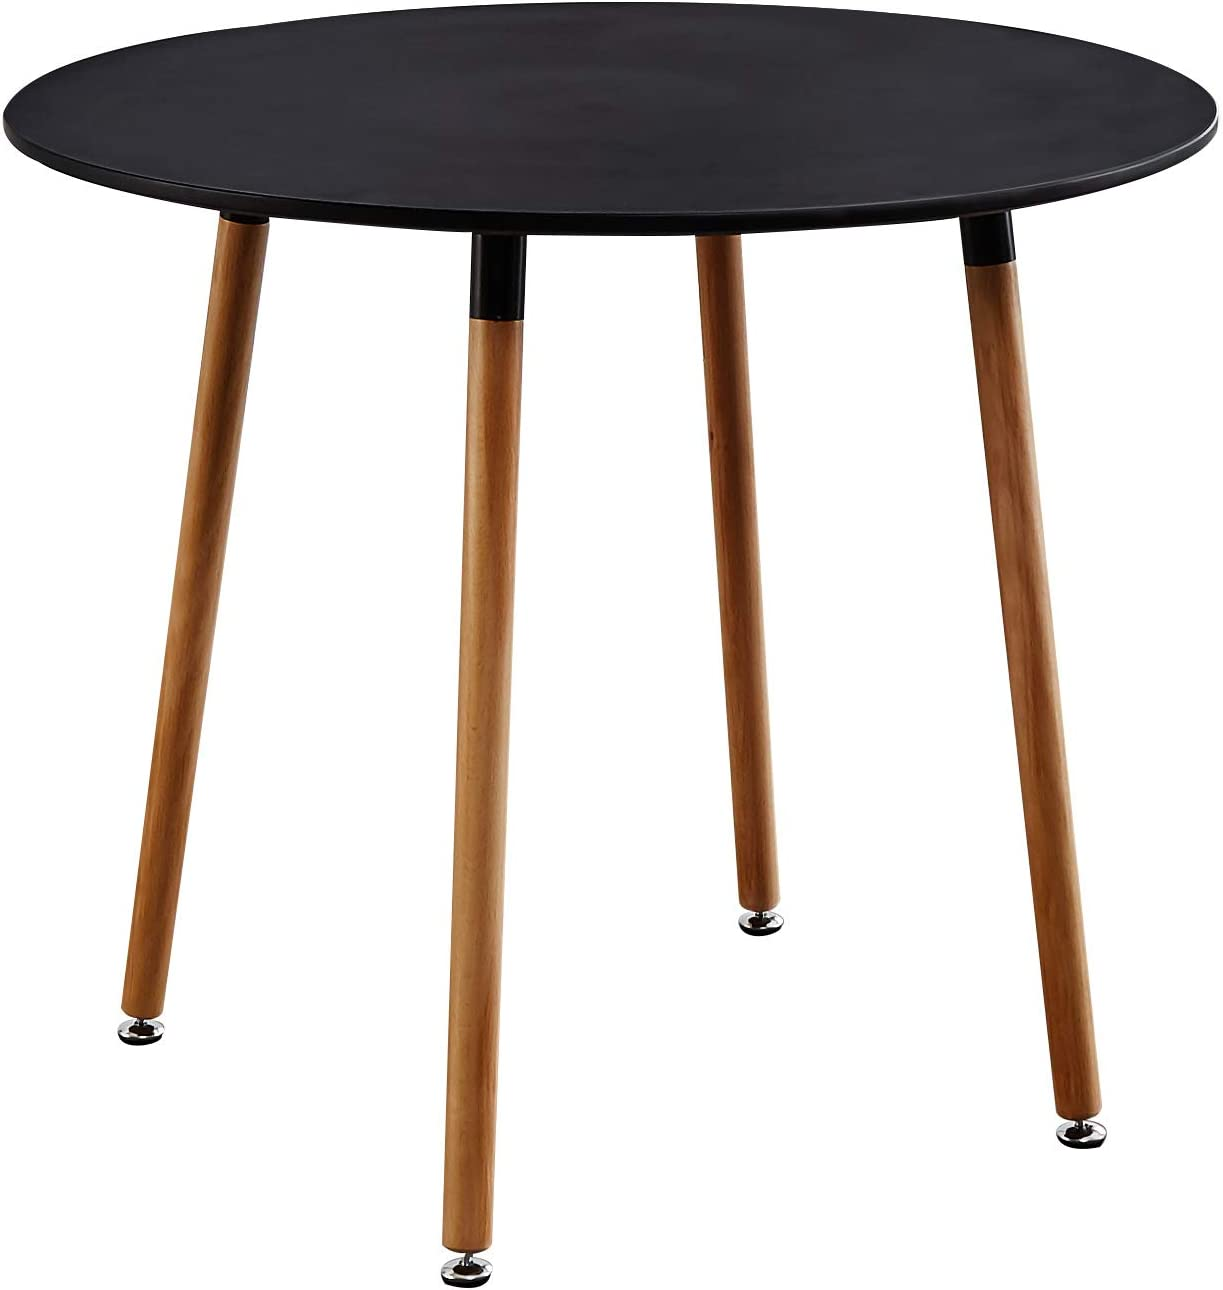 KOSY KOALA STYLISH CONTEMPORARY WOOD ROUND KITCHEN BLACK DINING TABLE AND 4 BLACK PADDED CHAIRS (Black table and 4 chairs) Black Table and 4 Chairs